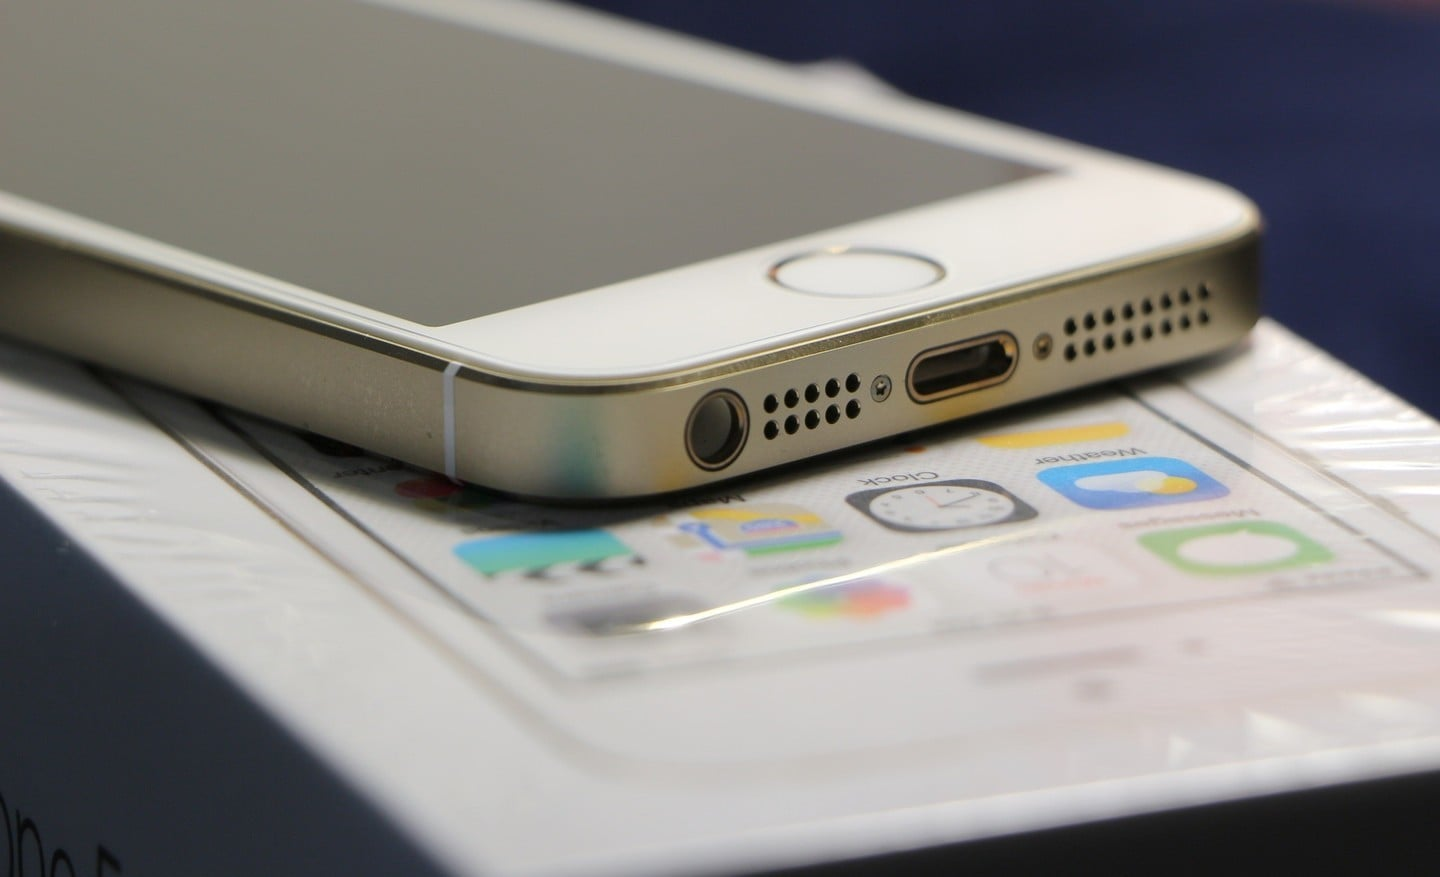 Was the iPhone 5 the biggest holiday gift this year?